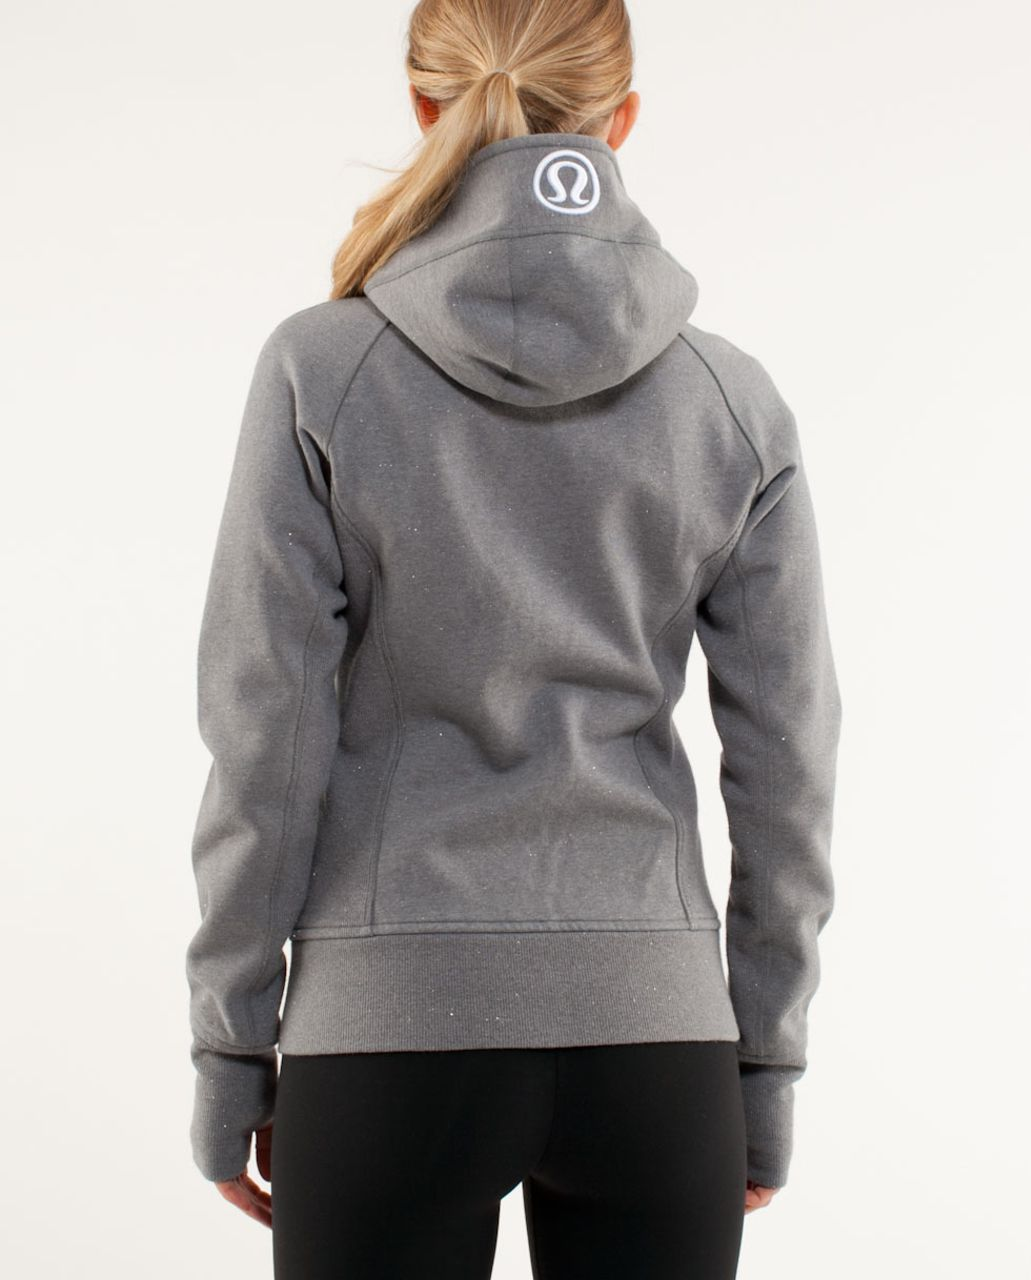 Lululemon Scuba Hoodie *Sparkle - Heathered Blurred Grey /  Blurred Grey